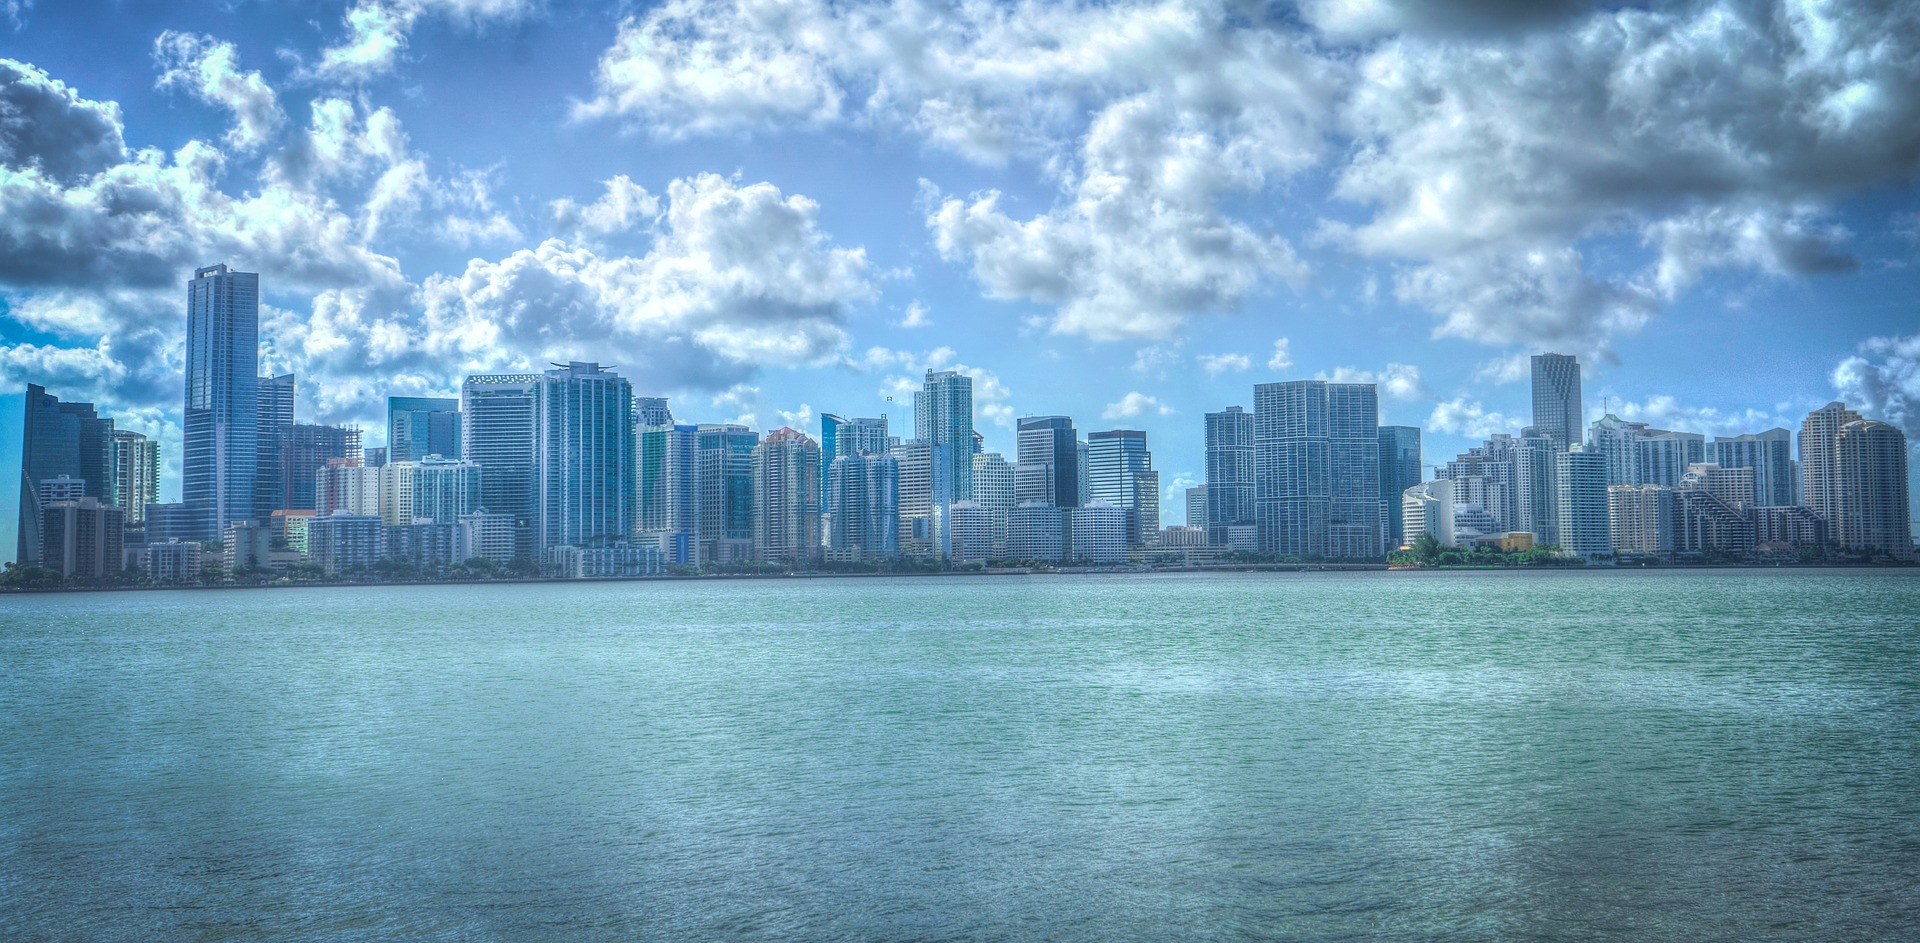 climate change threatens miami. GOP does nothing